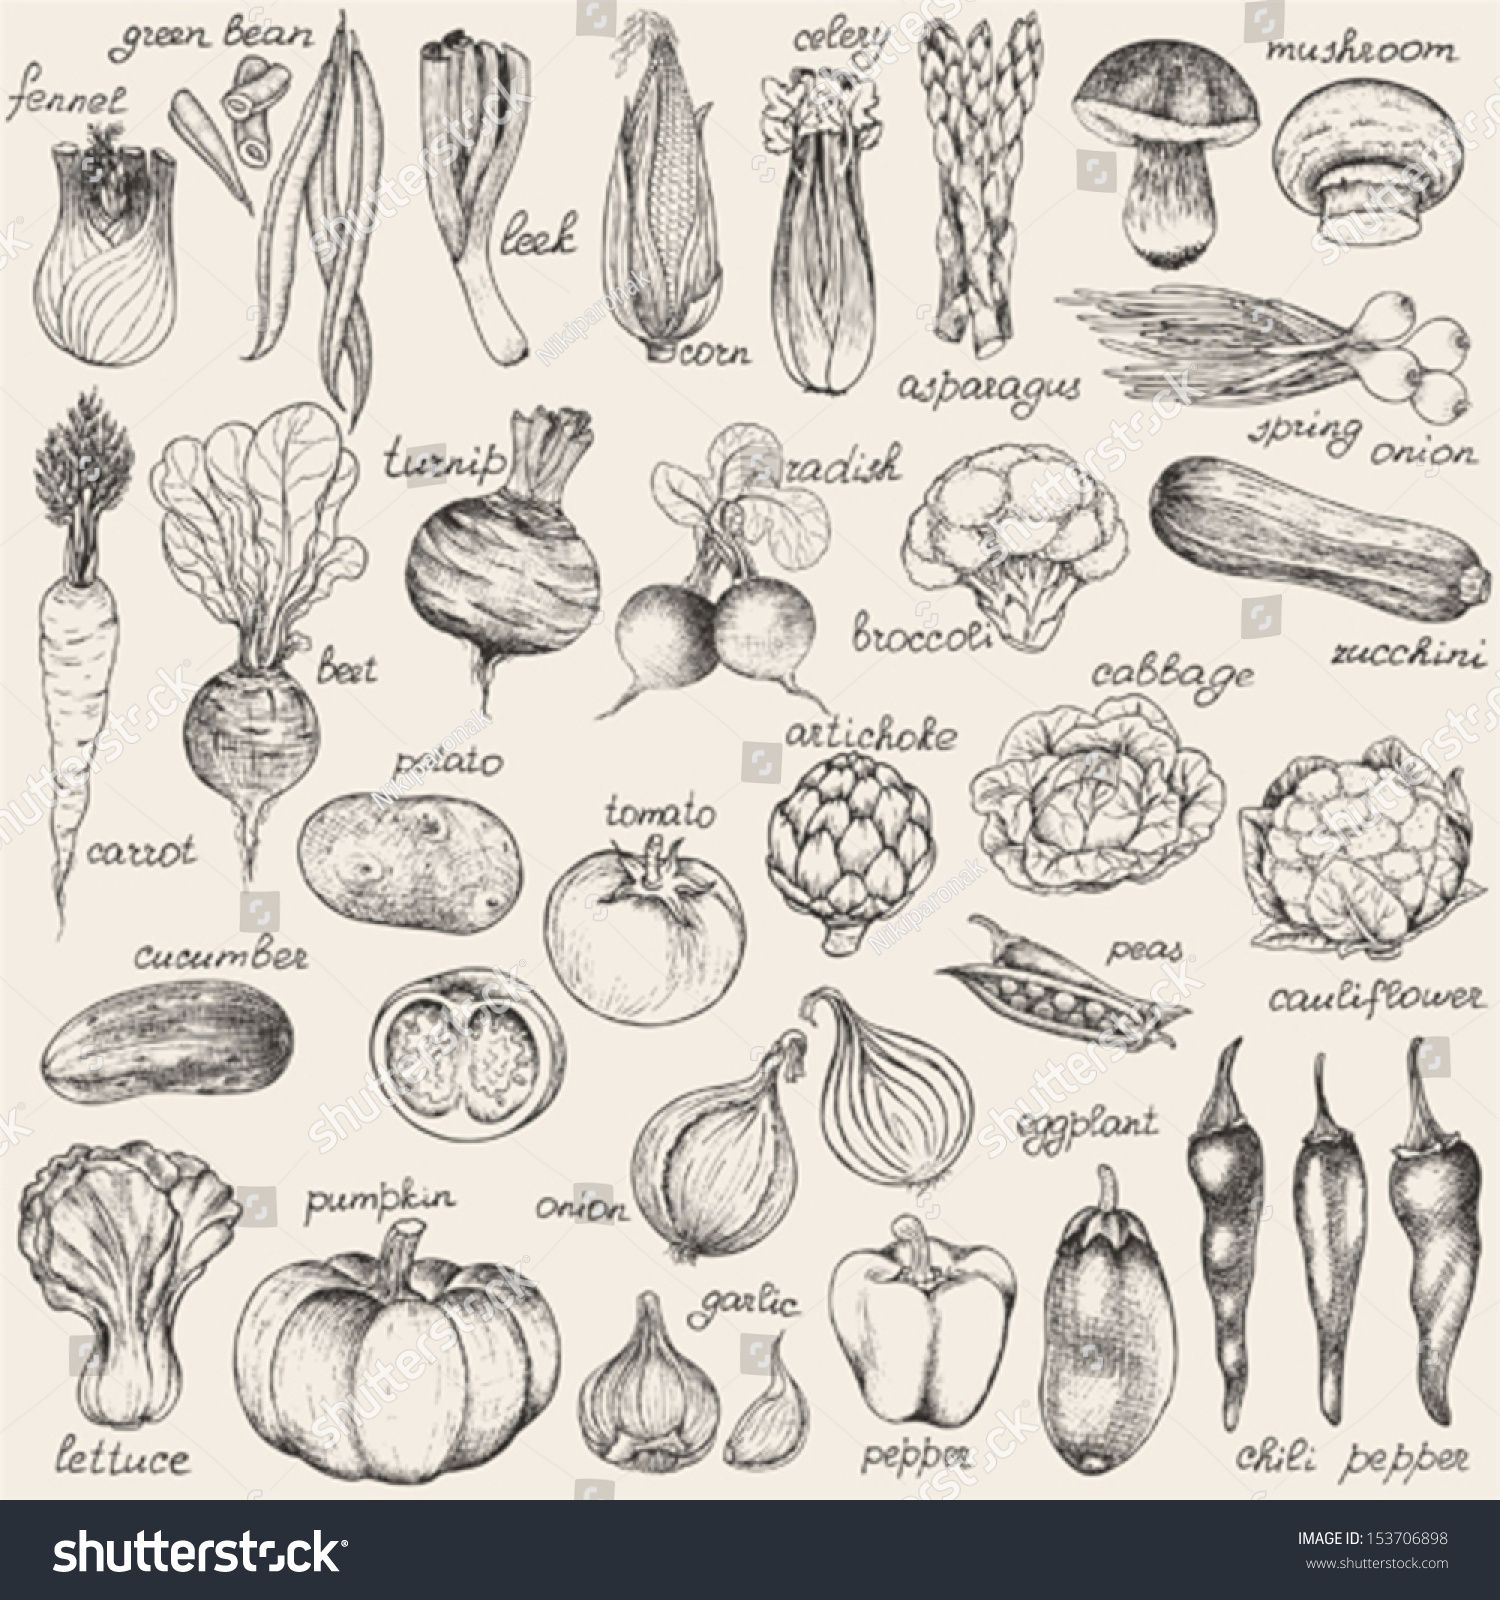 Collection Of Hand Drawn Vegetables Vector Illustration In Vintage Style Illustration How To Draw Hands Vintage Illustration